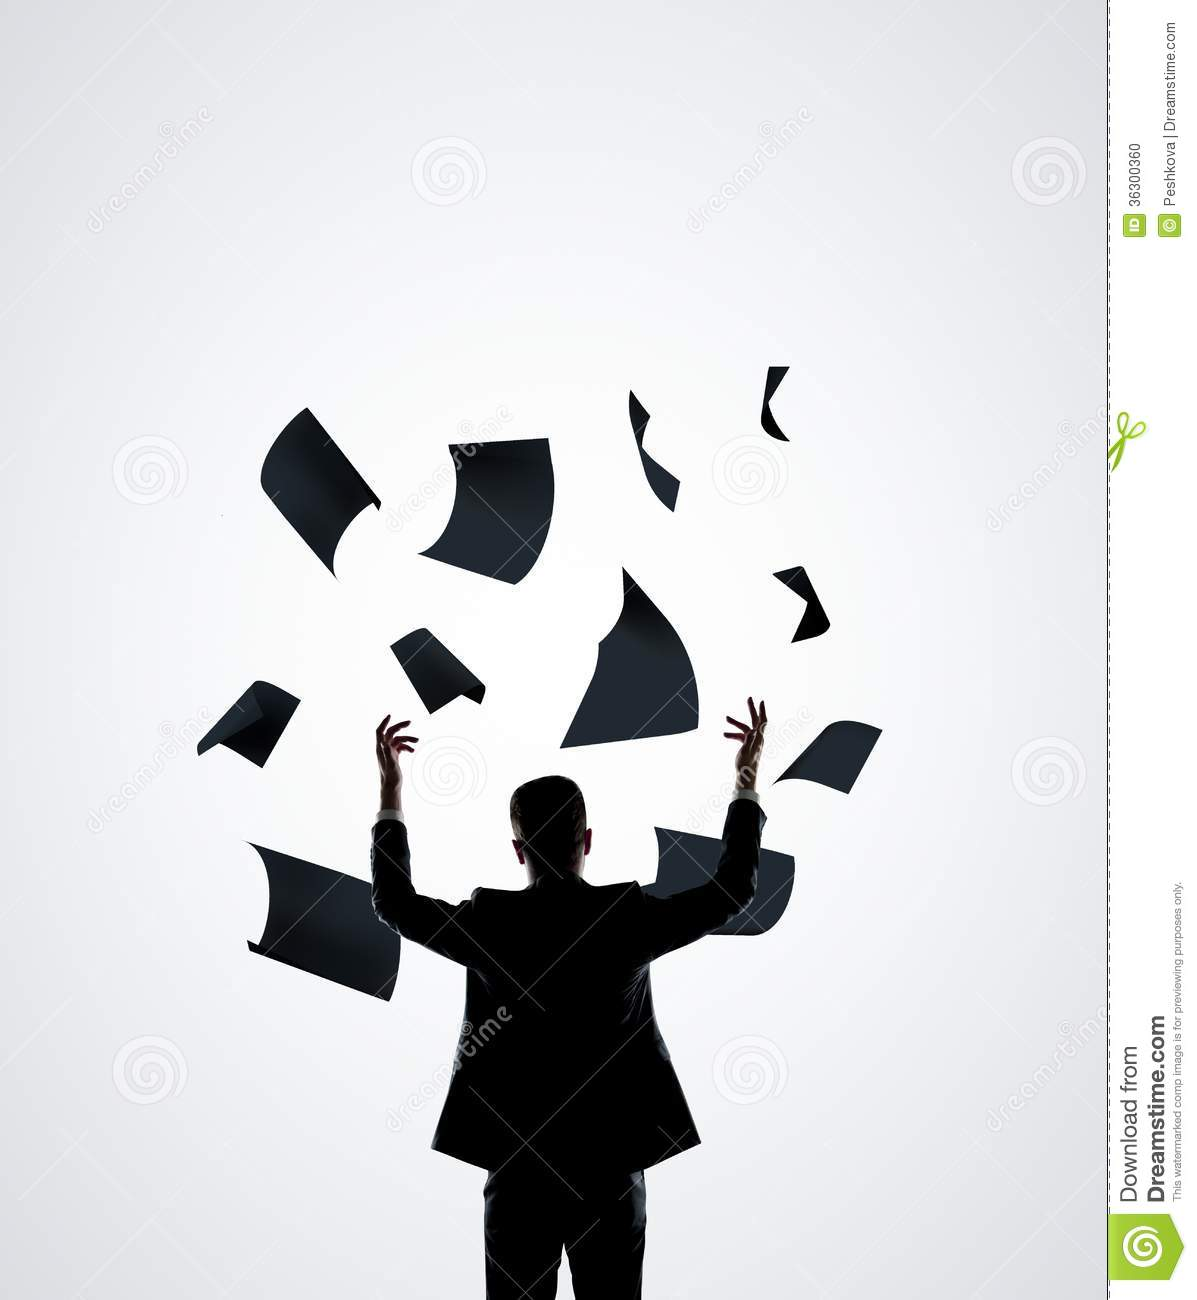 Businessman Throwing Paper Stock Photo - Image: 36300360